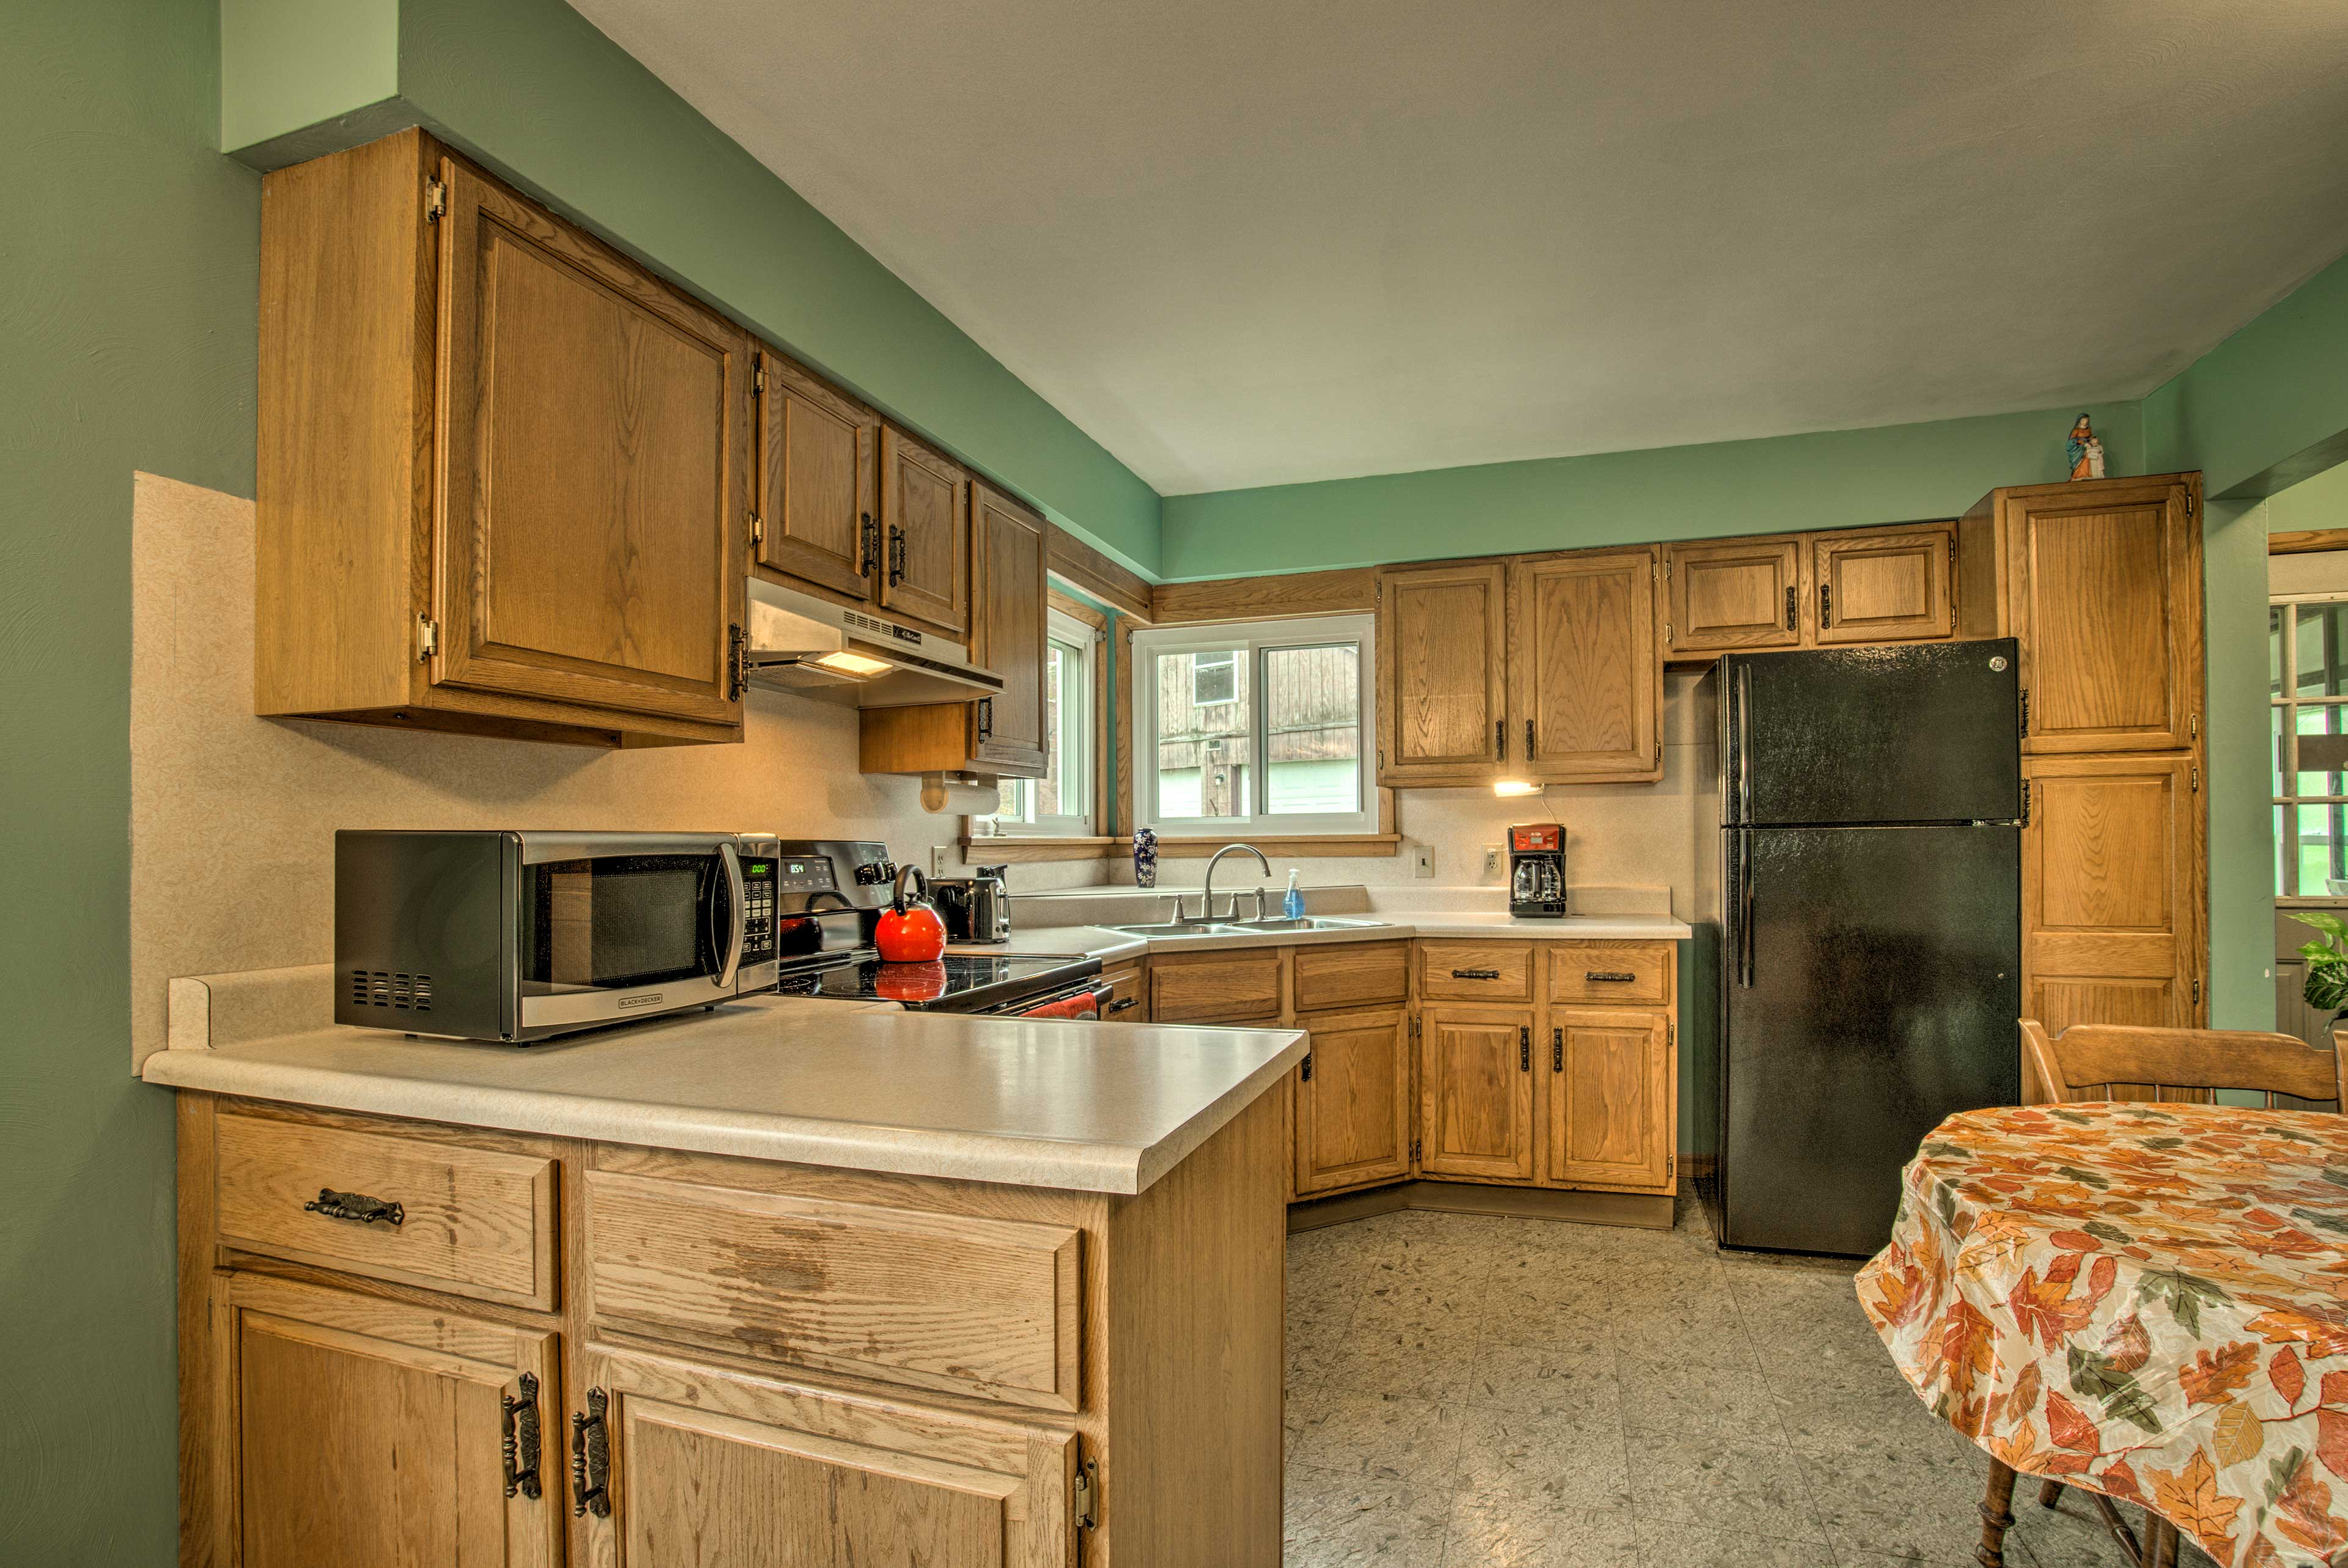 Ample counter space and essential appliances make cooking easy!